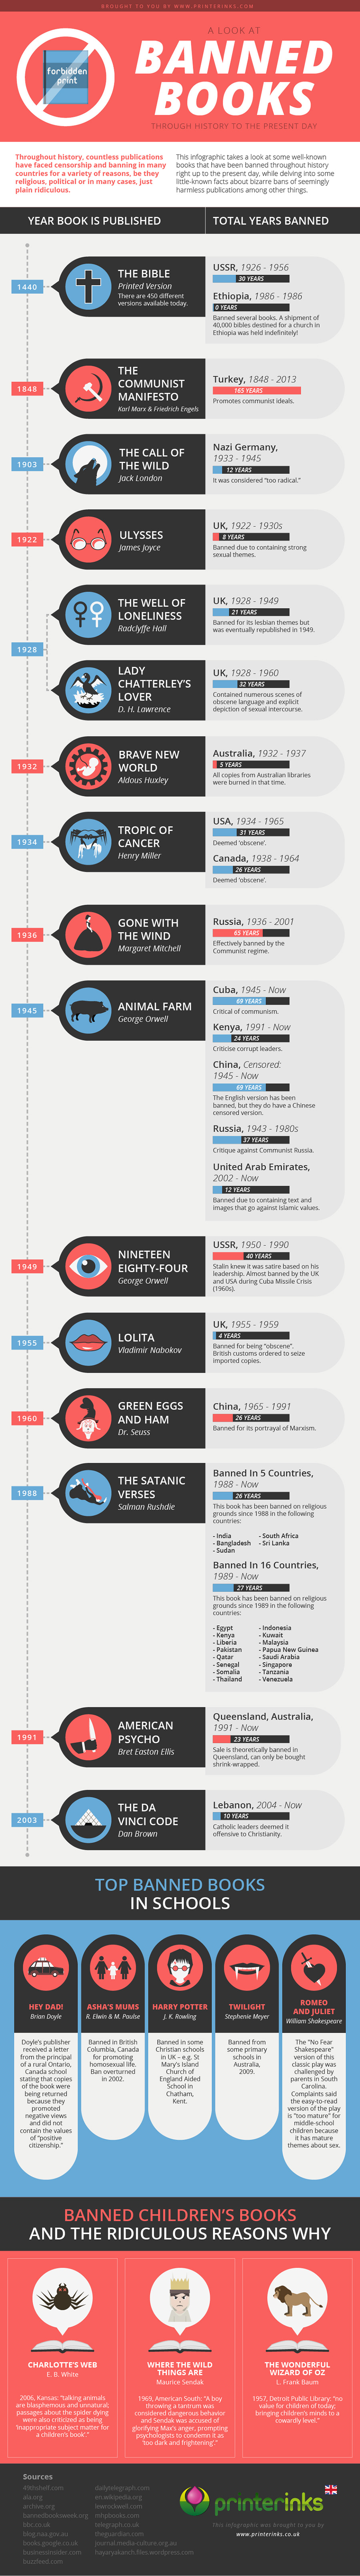 infographic banned books